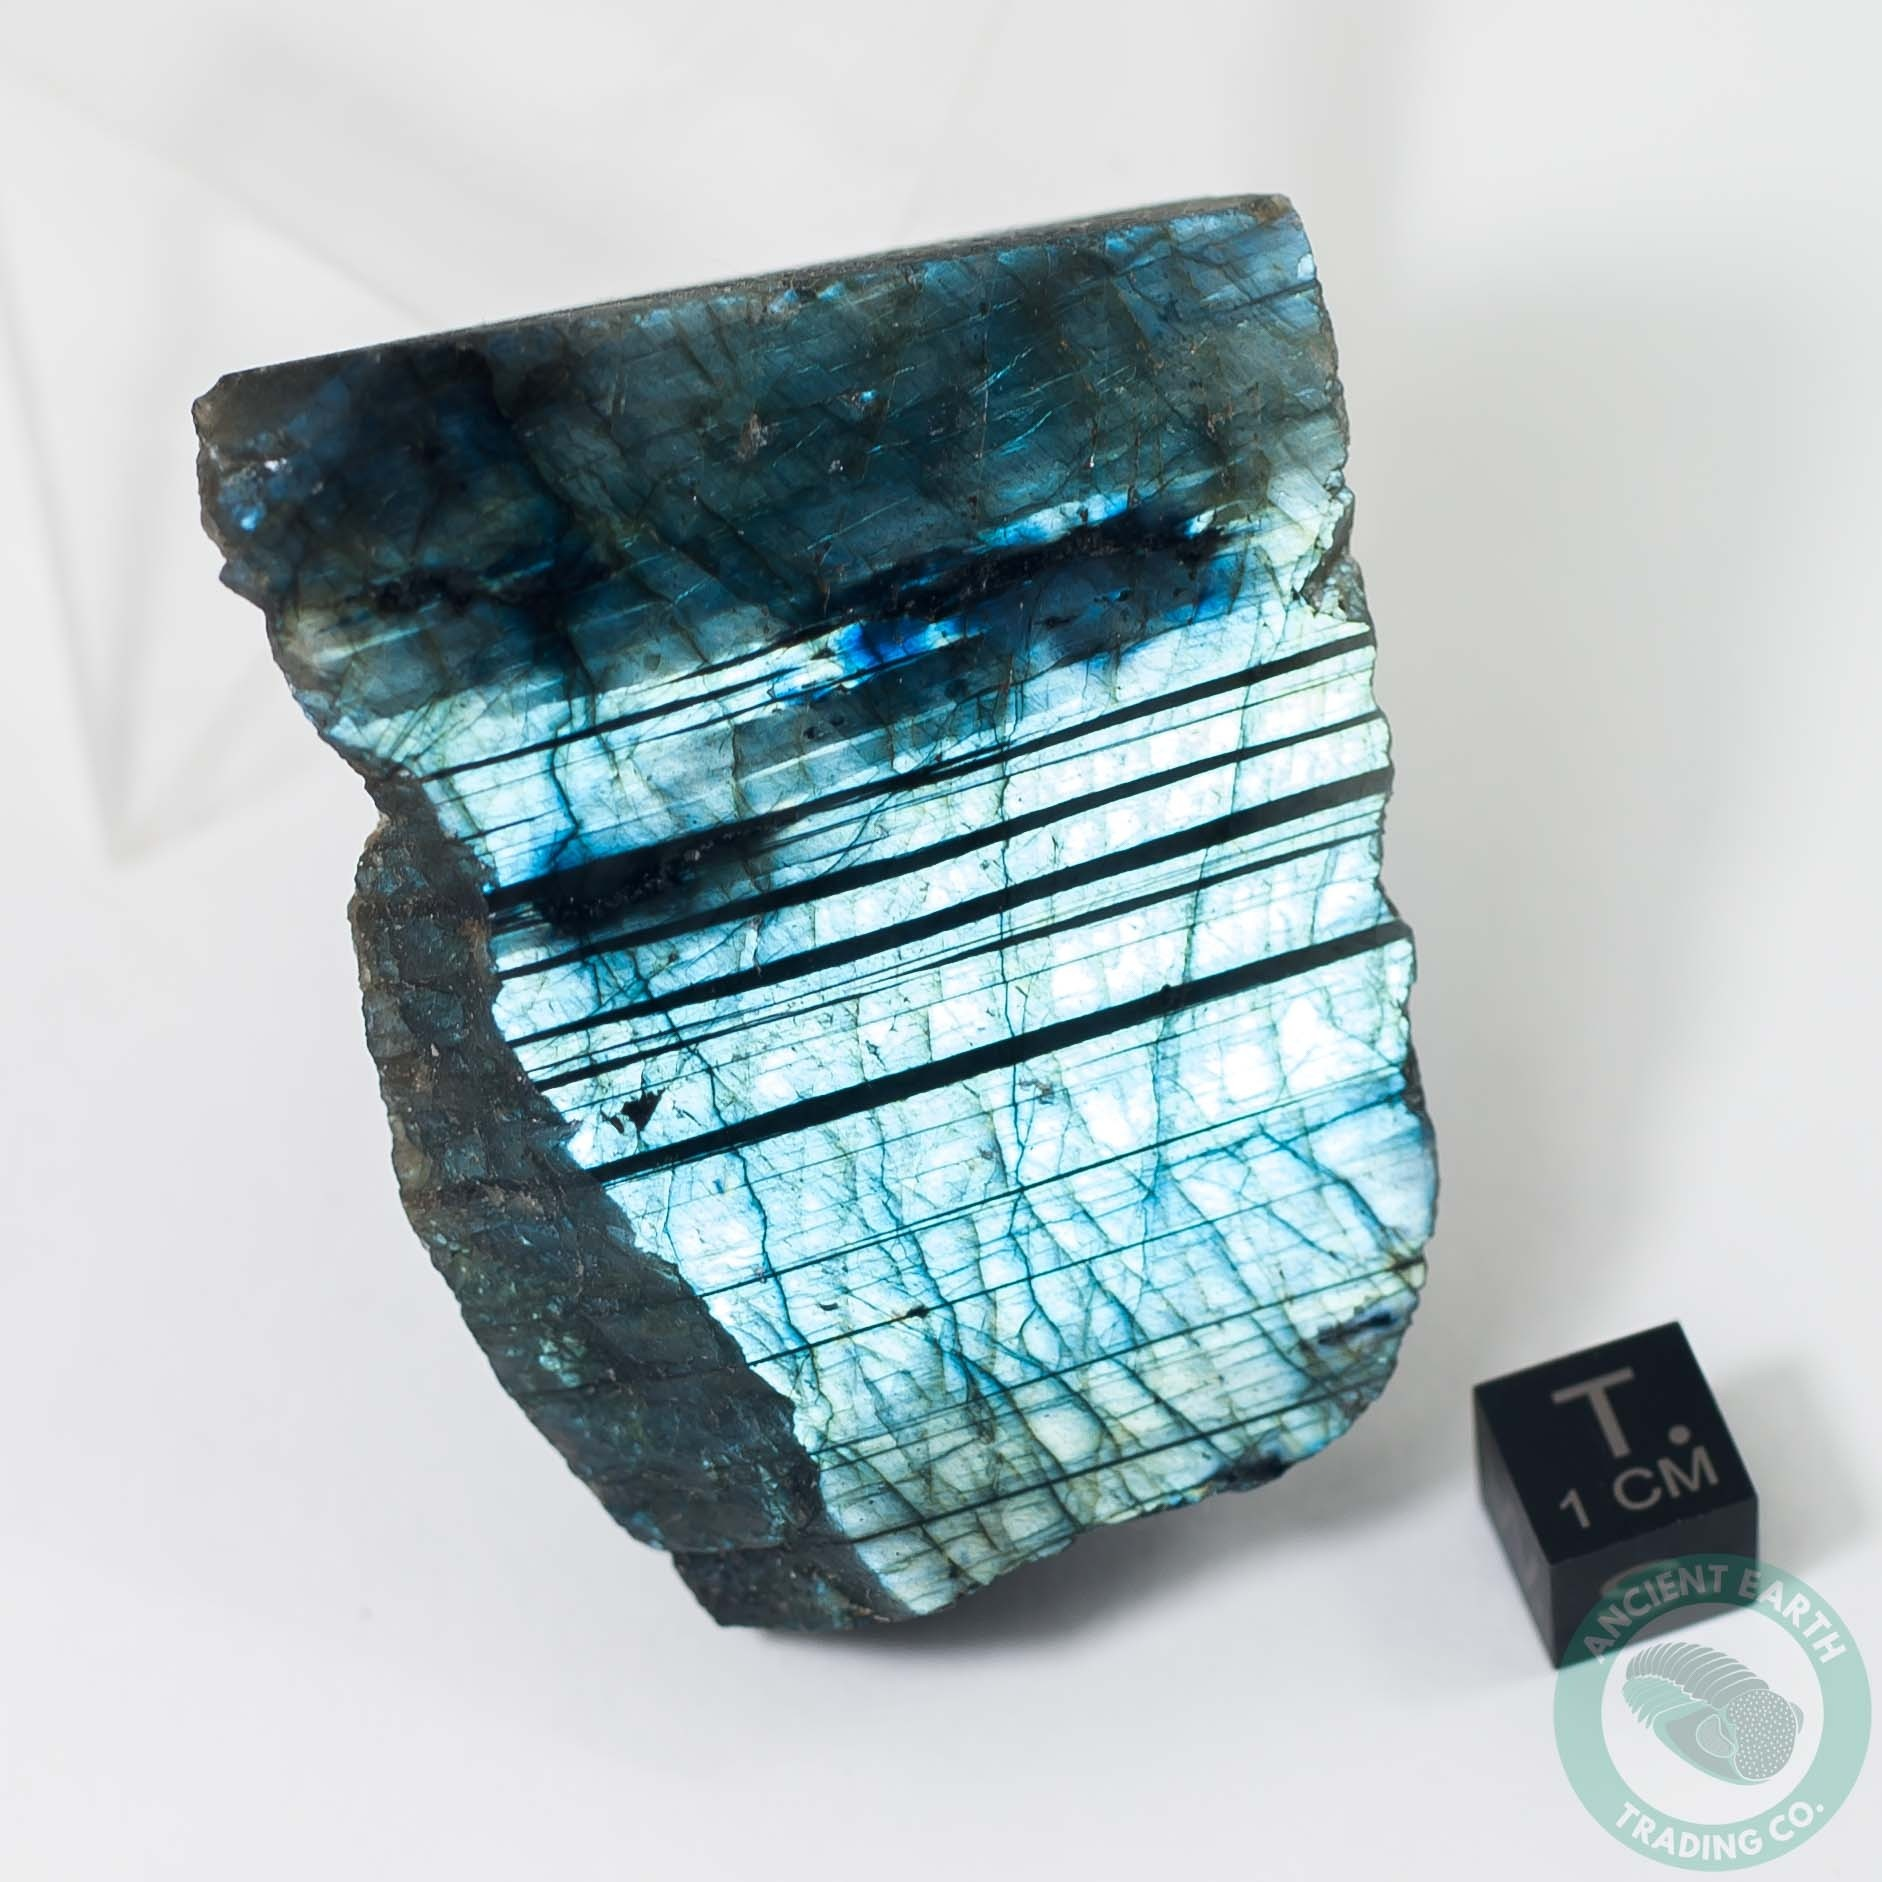 2.39 in Labradorite Face Polished Electric Blue Iridescence